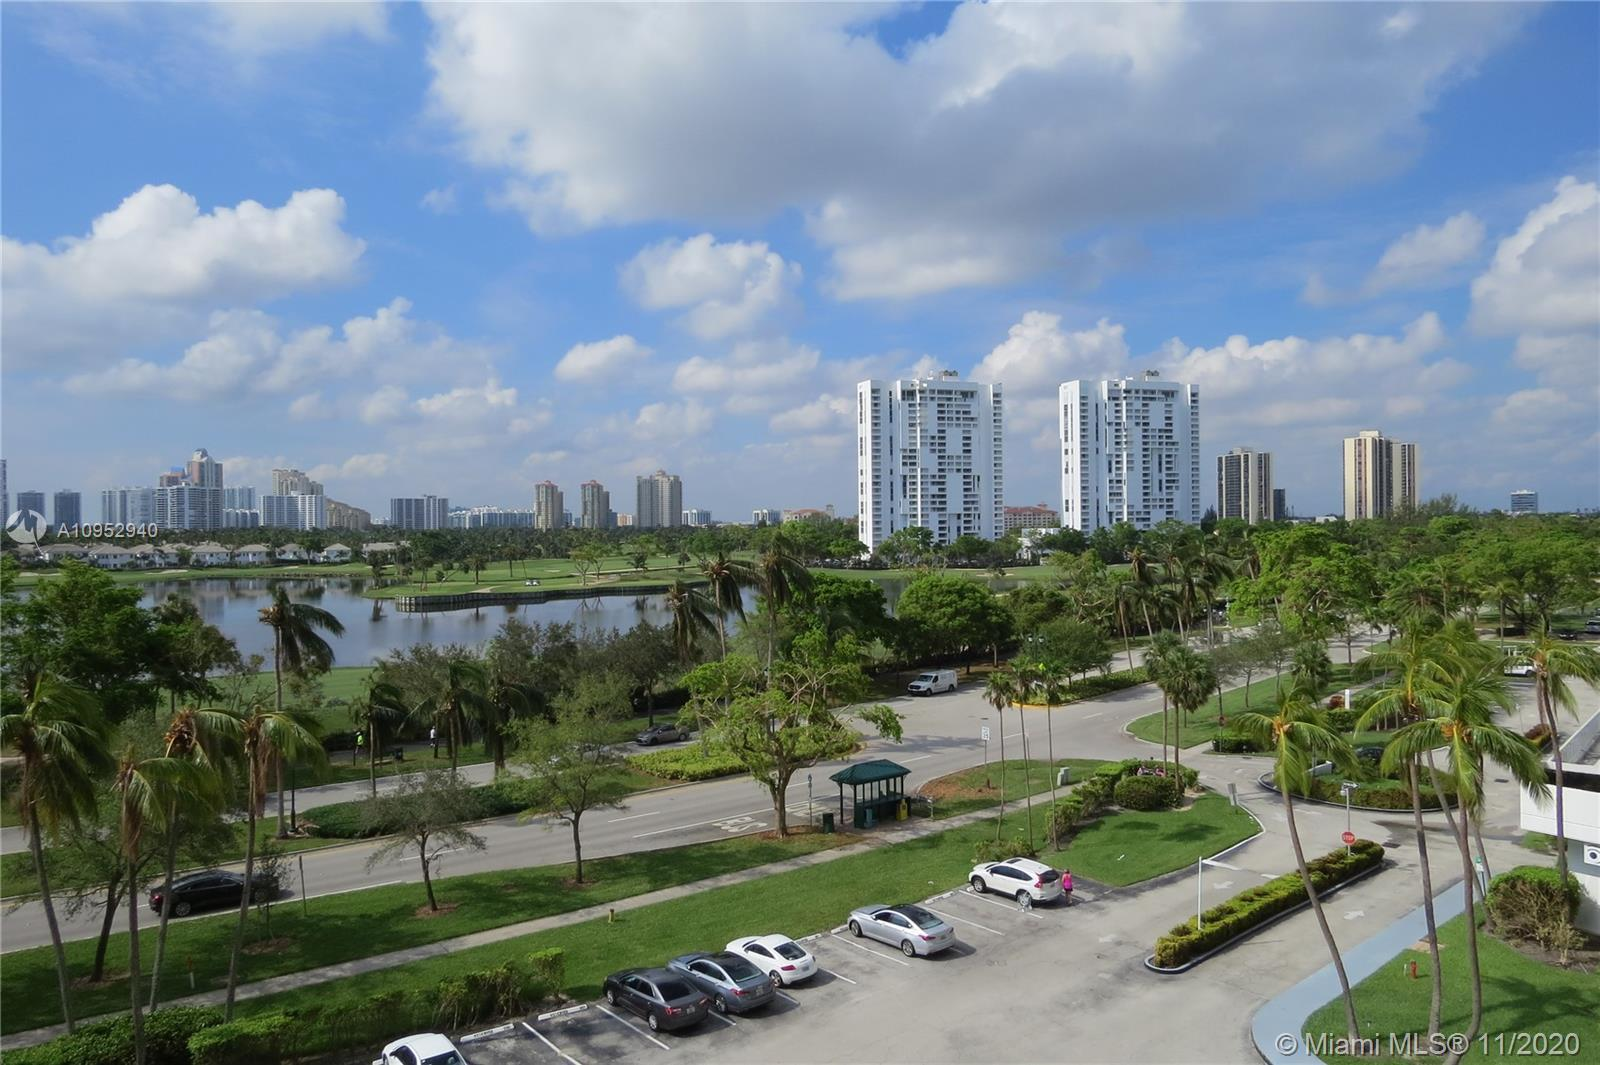 Eldorado Towers / Aventura / 2 Beds / 2 Baths / 996 sq. ft. of living area / Beautiful view of the G